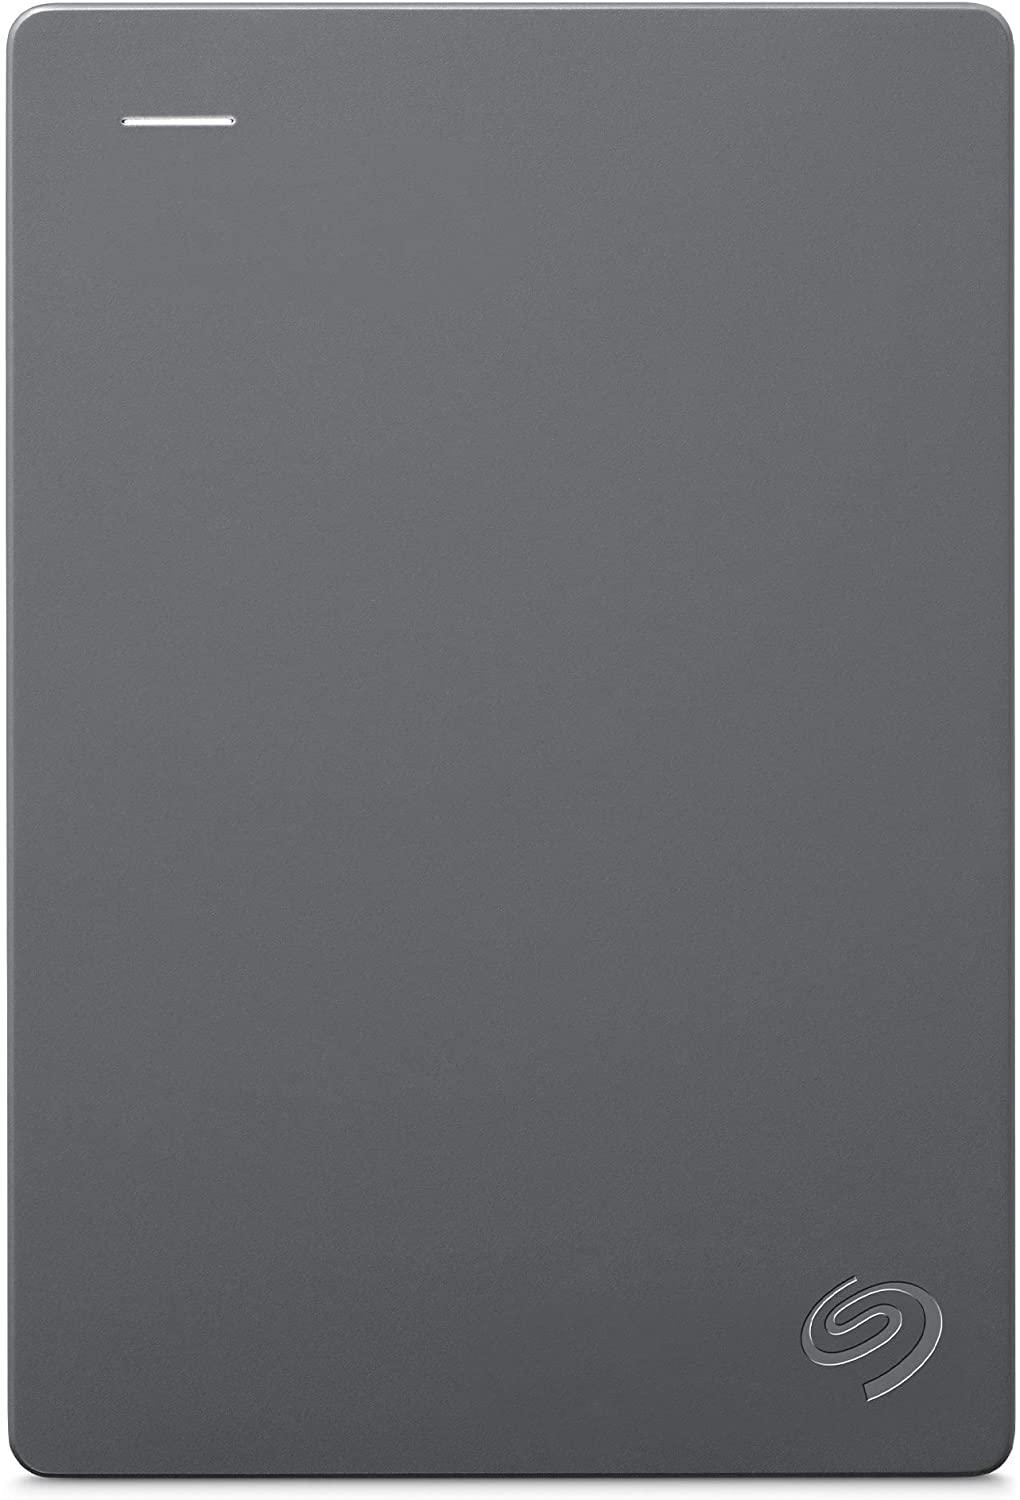 Hard Drives 1TB Basic USB3 Grey 2.5in Ext HDD